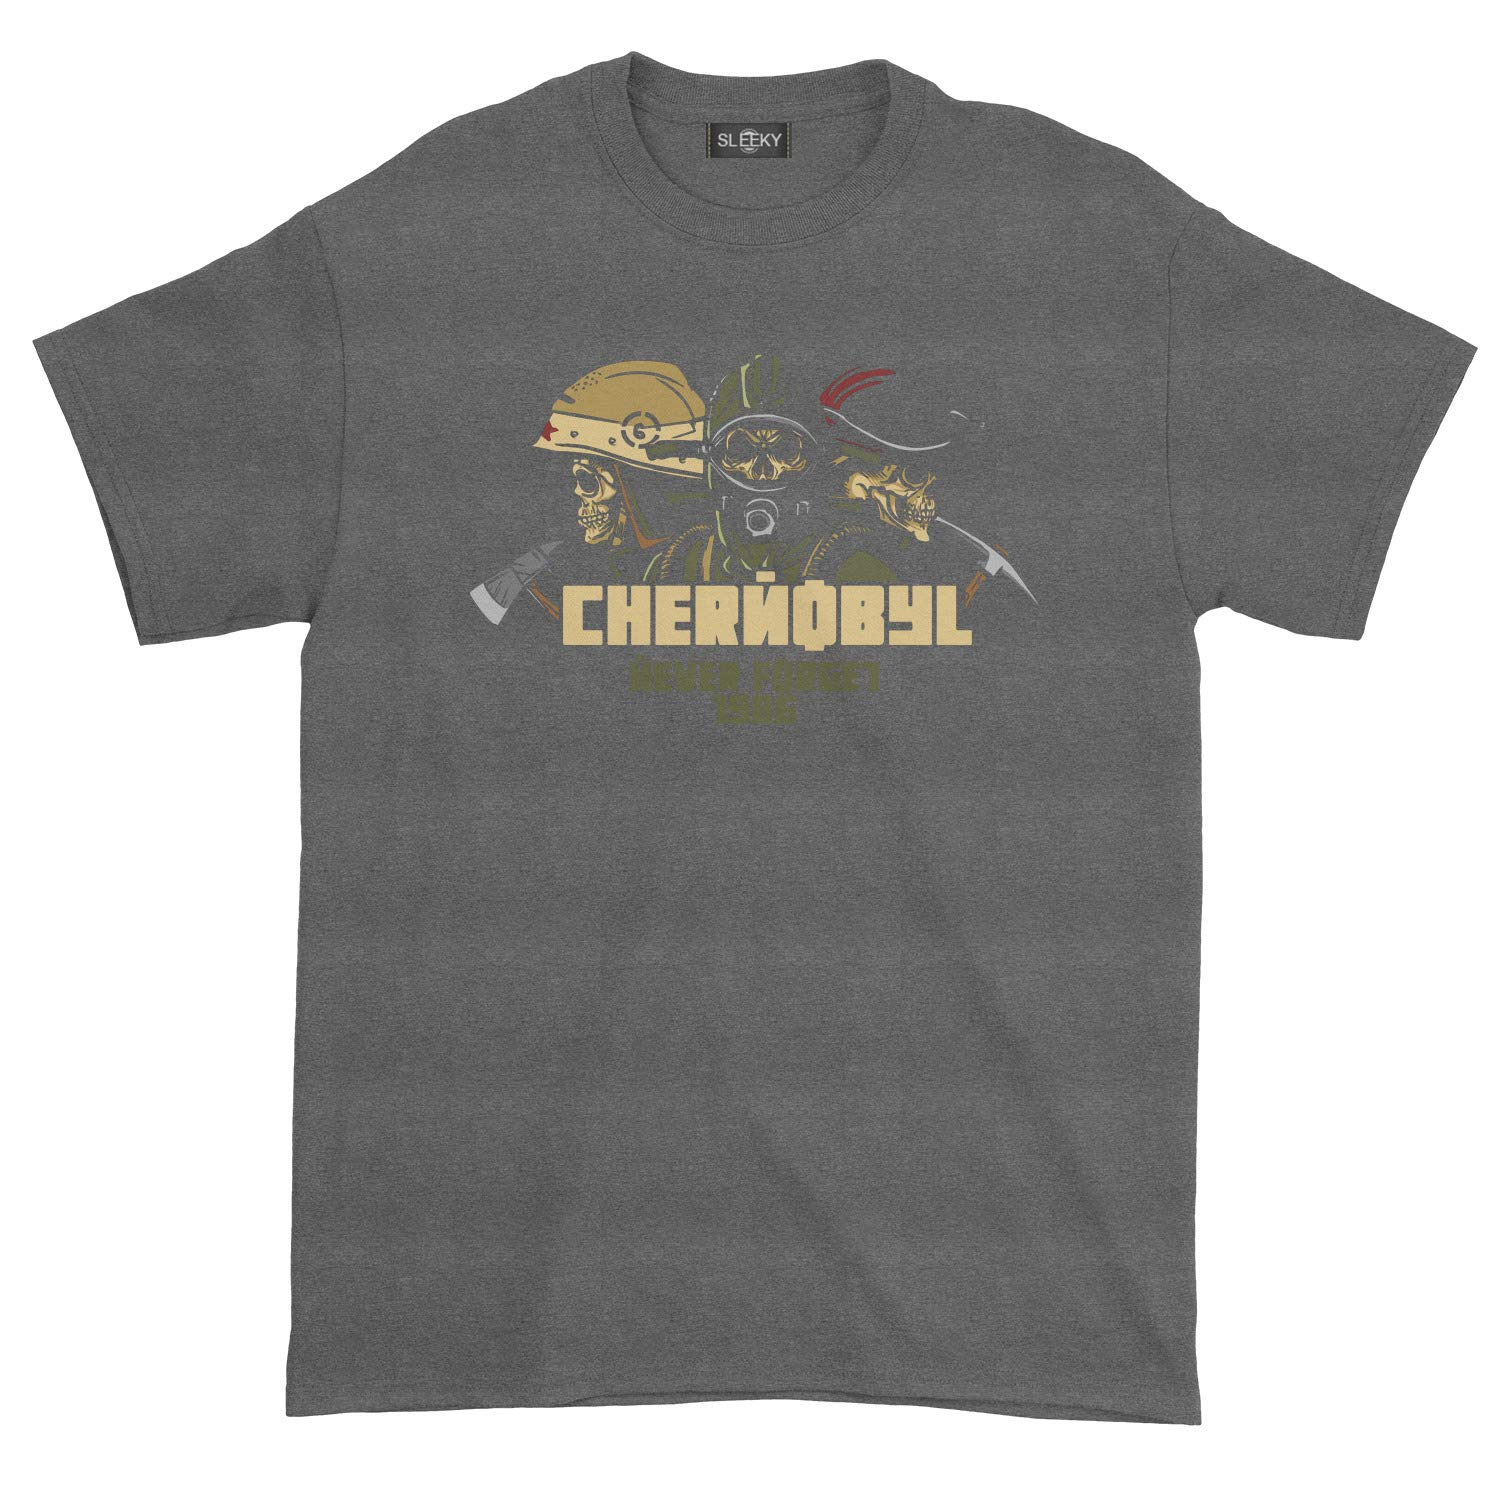 Sleeky Chernobyl Never Forget 1986 T-Shirt